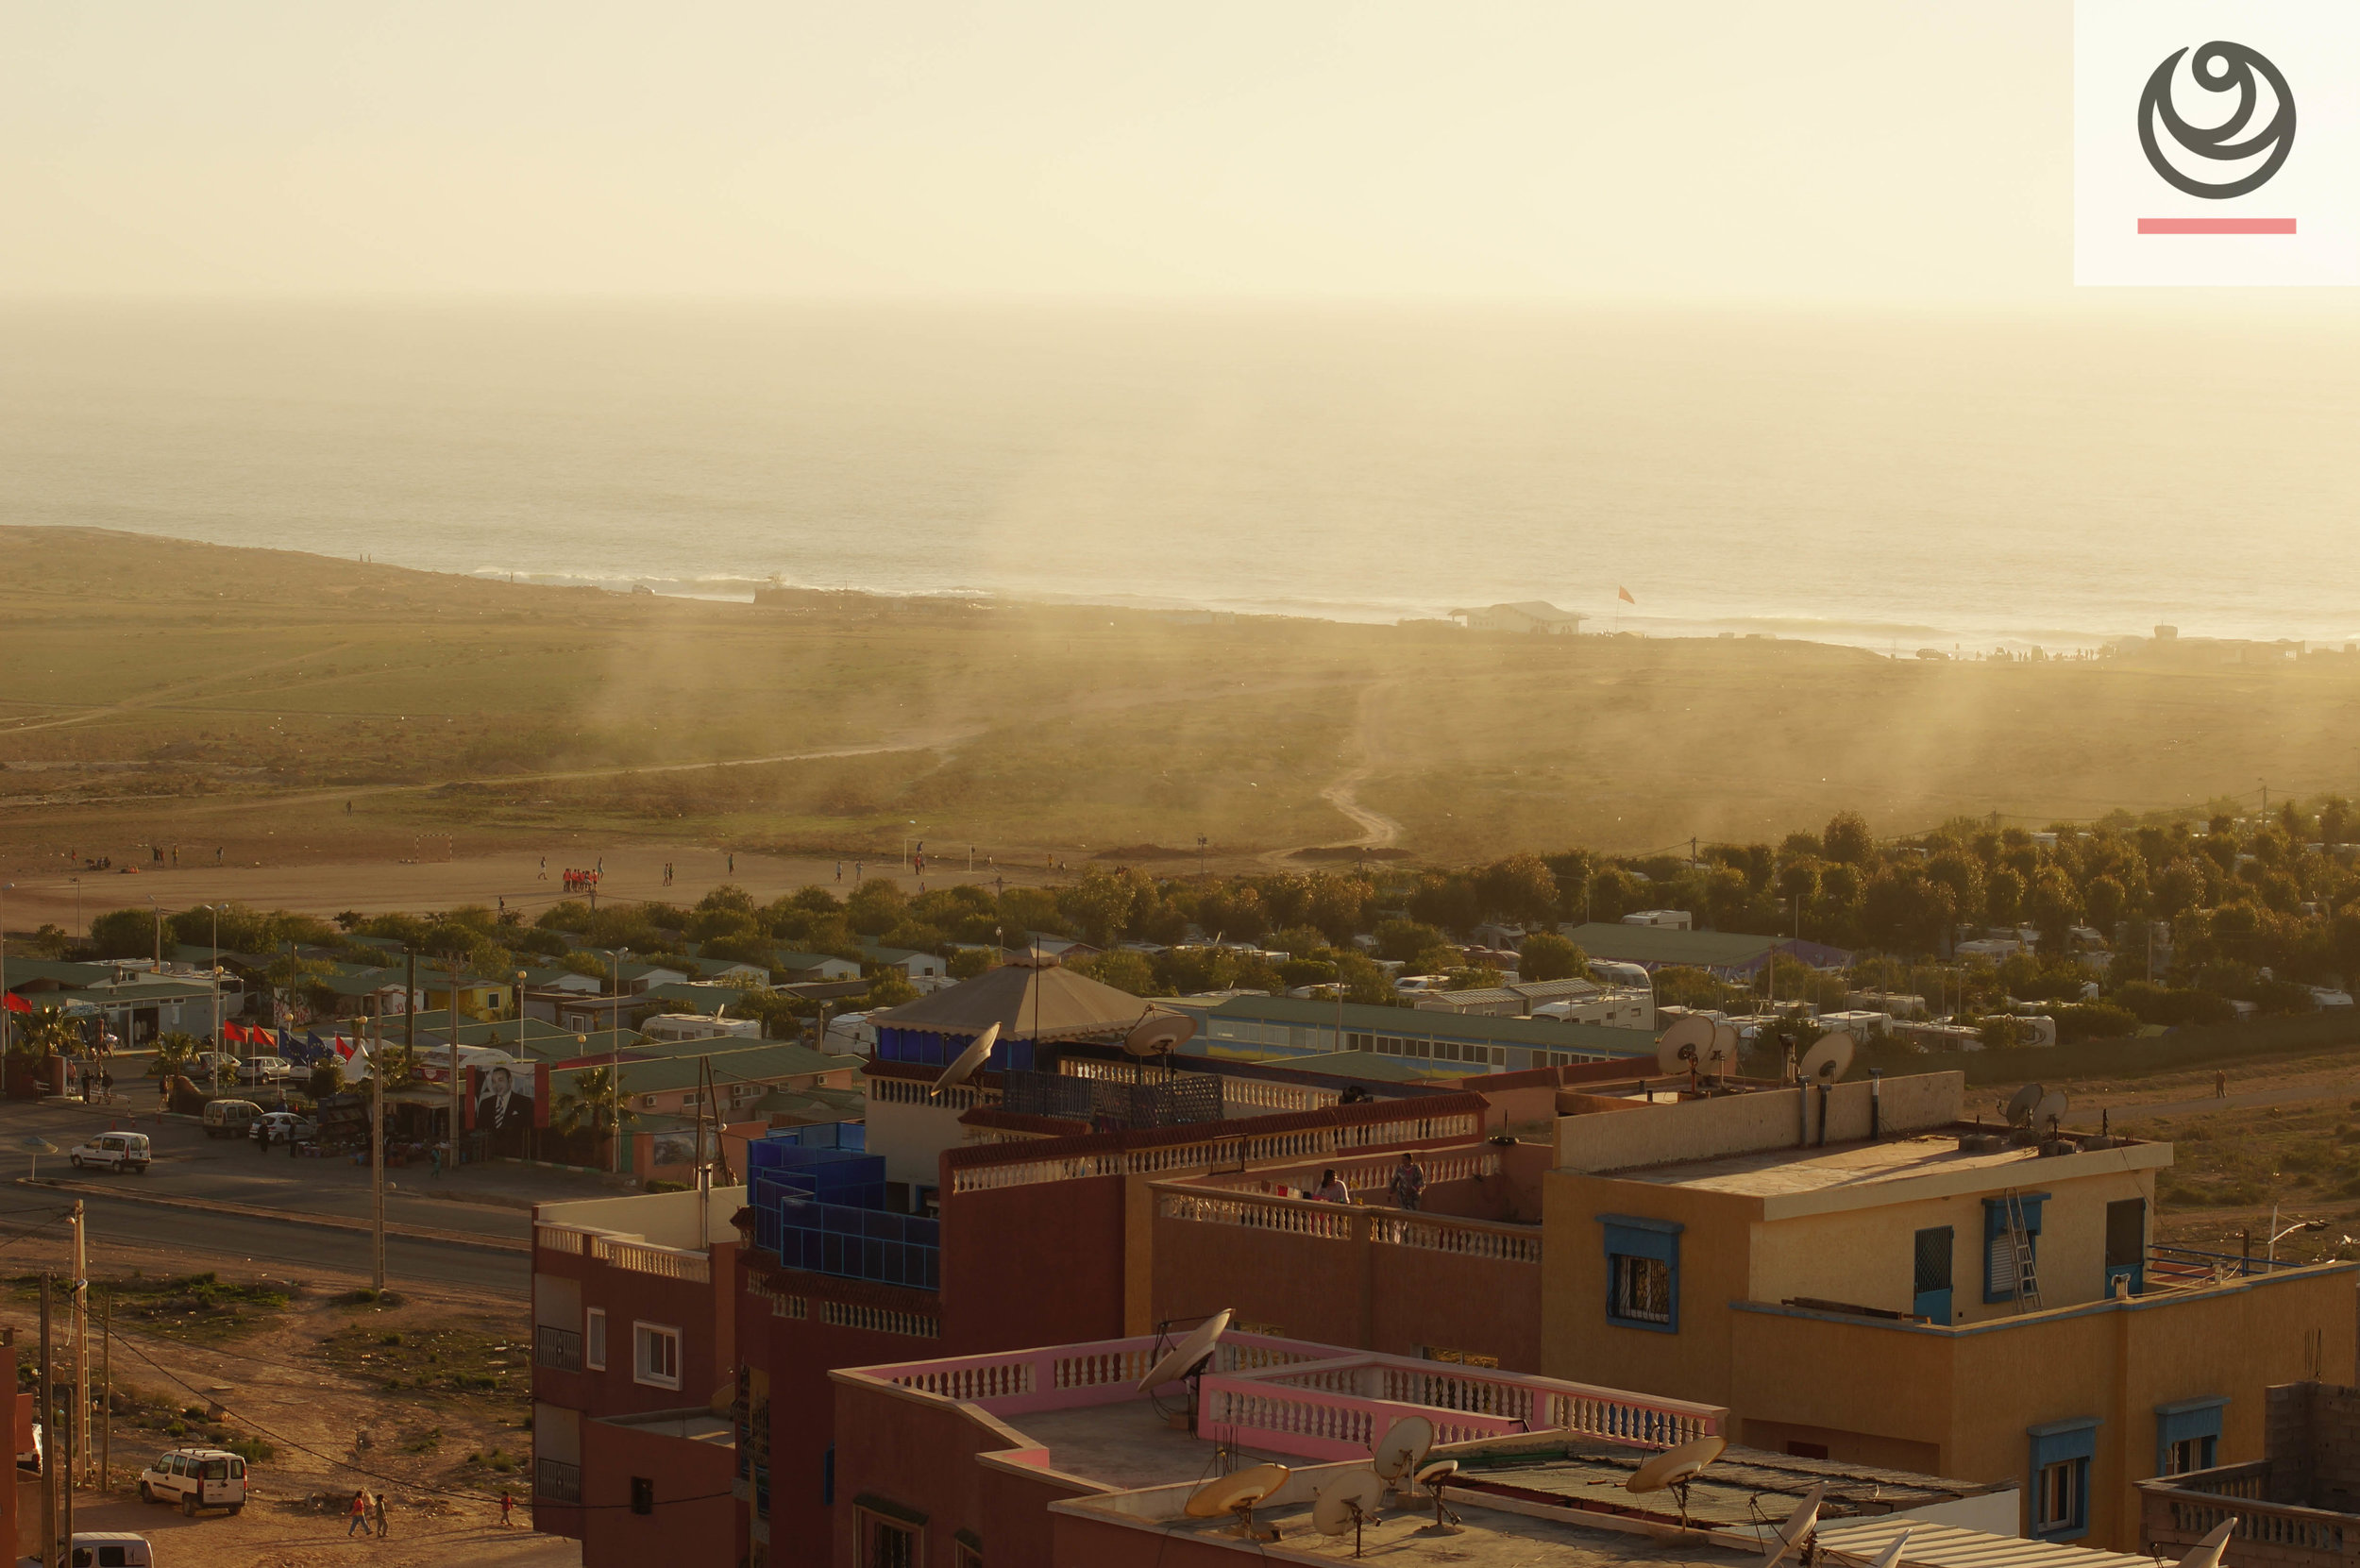 Offshore winds in the Golden hour in Morocco